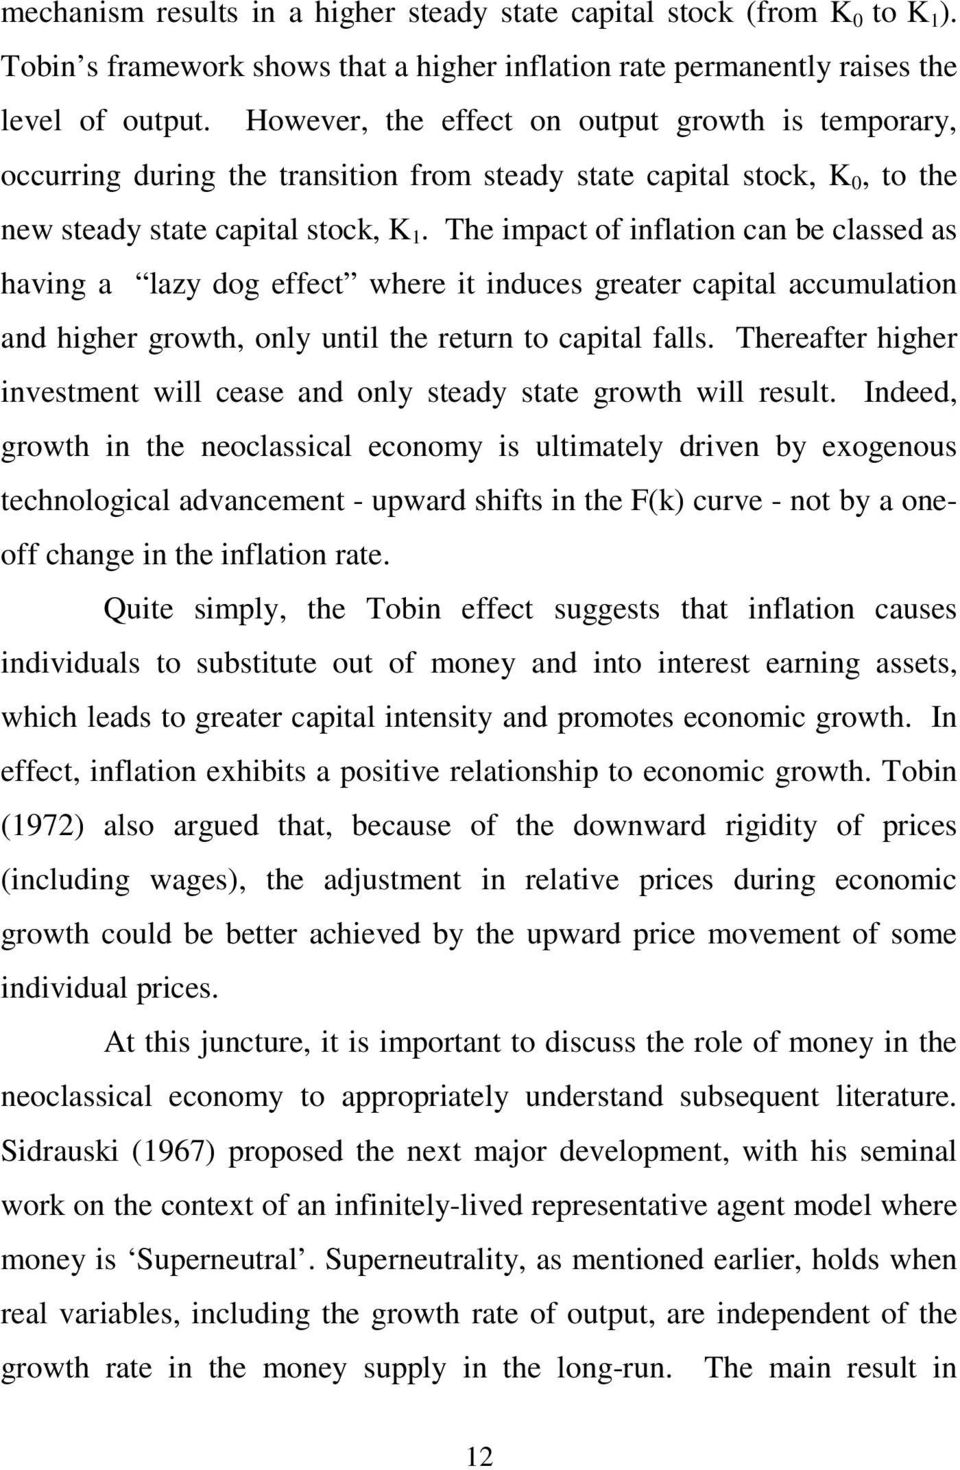 The impact of inflation can be classed as having a lazy dog effect where it induces greater capital accumulation and higher growth, only until the return to capital falls.